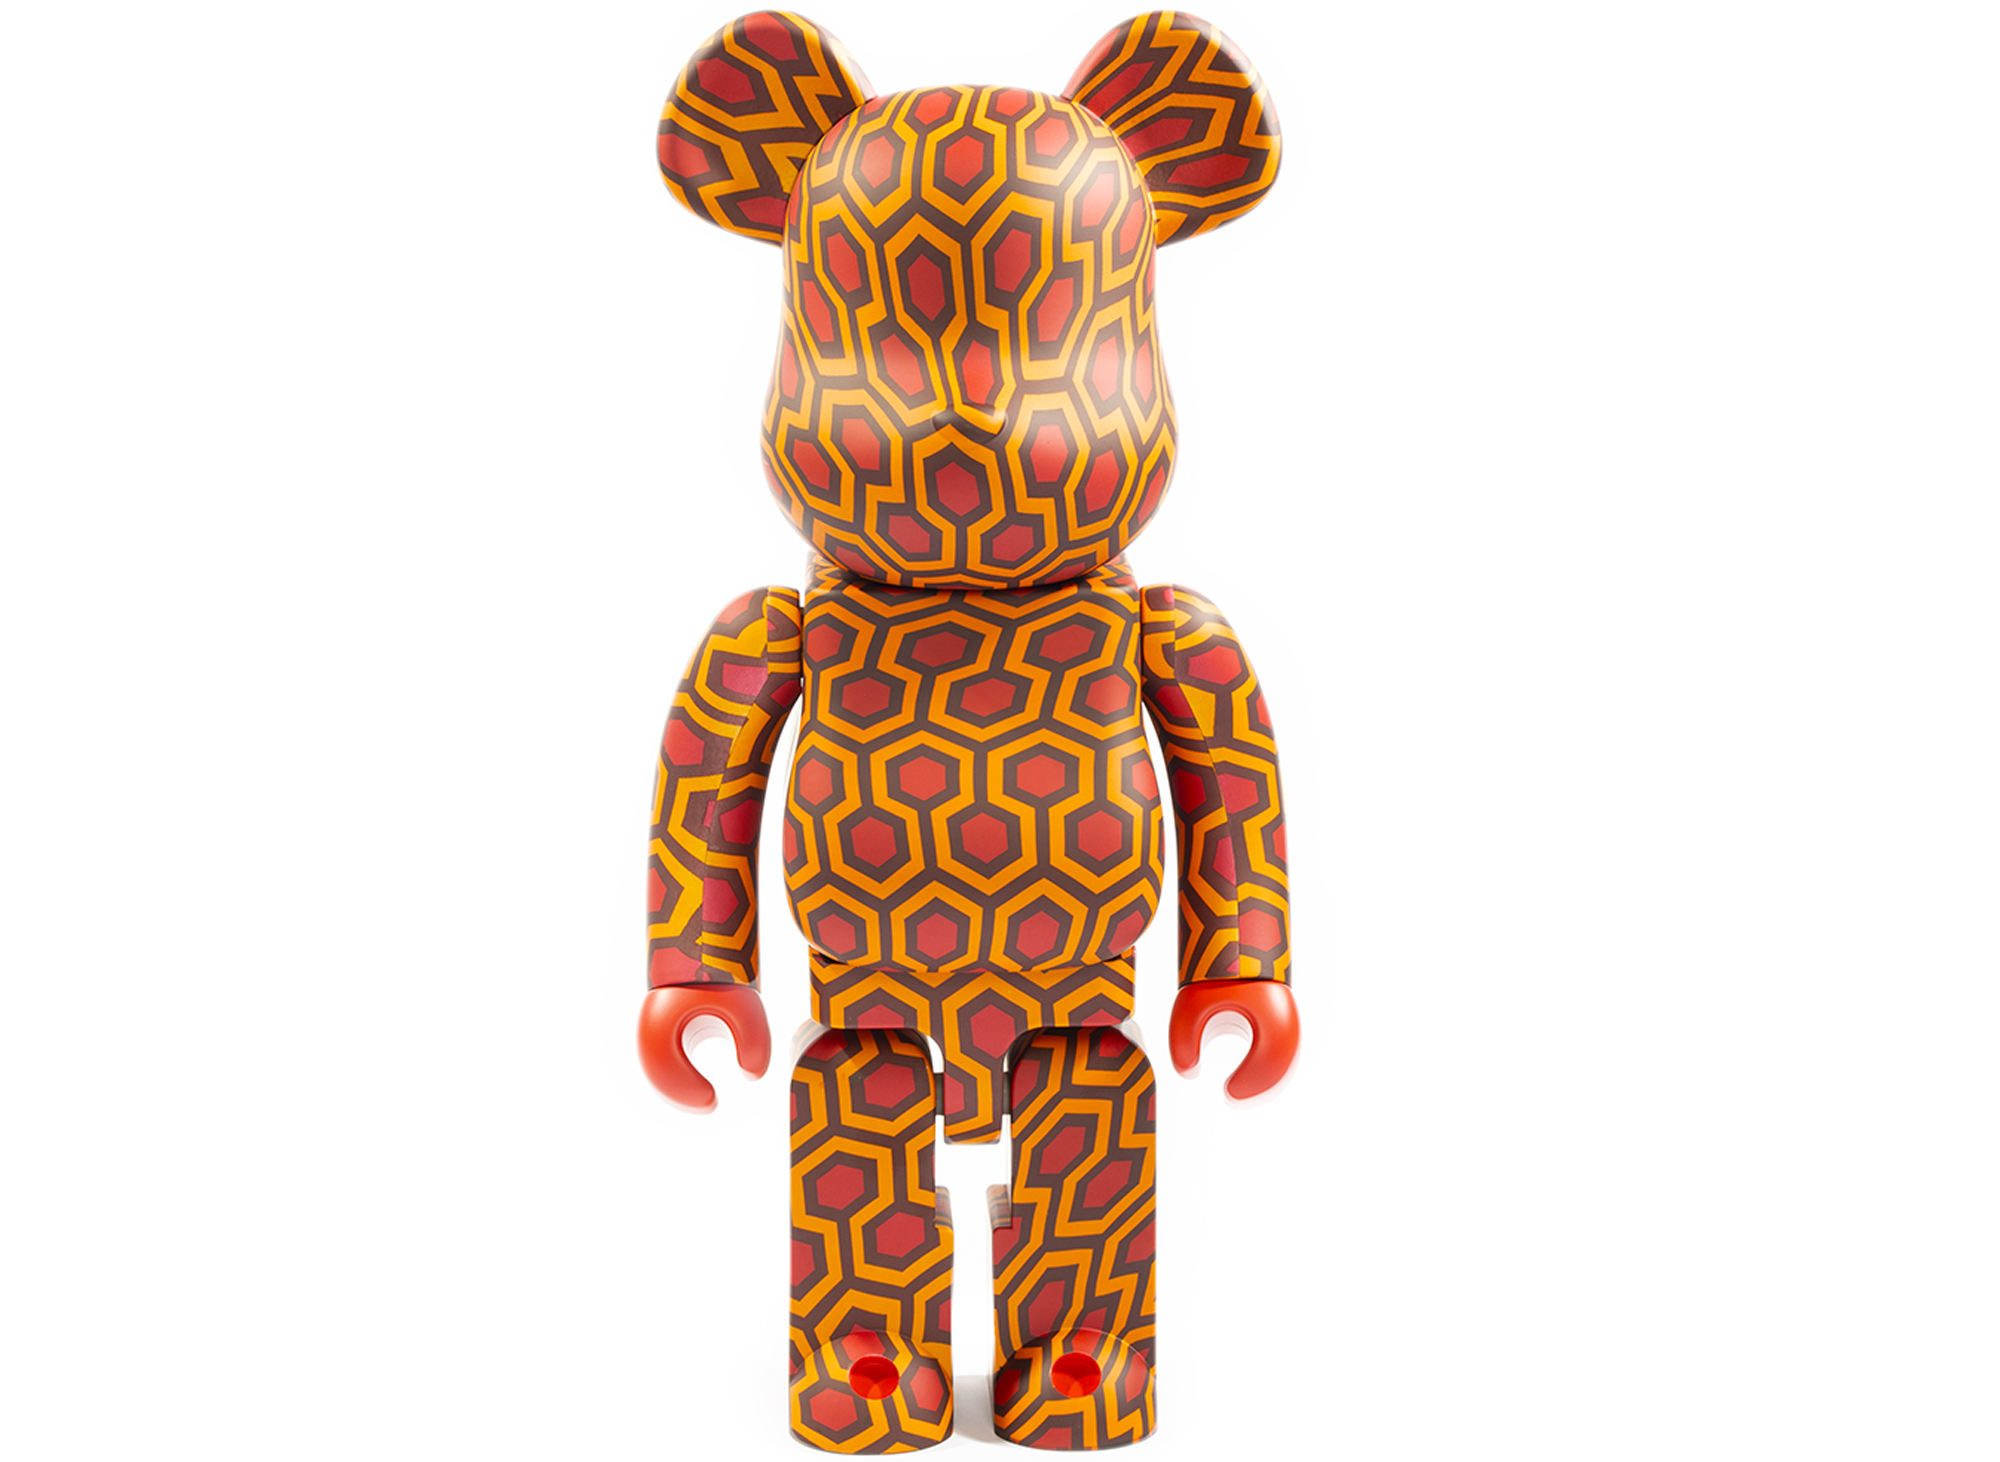 Medicom Toy BearBrick The SHINING 1000%